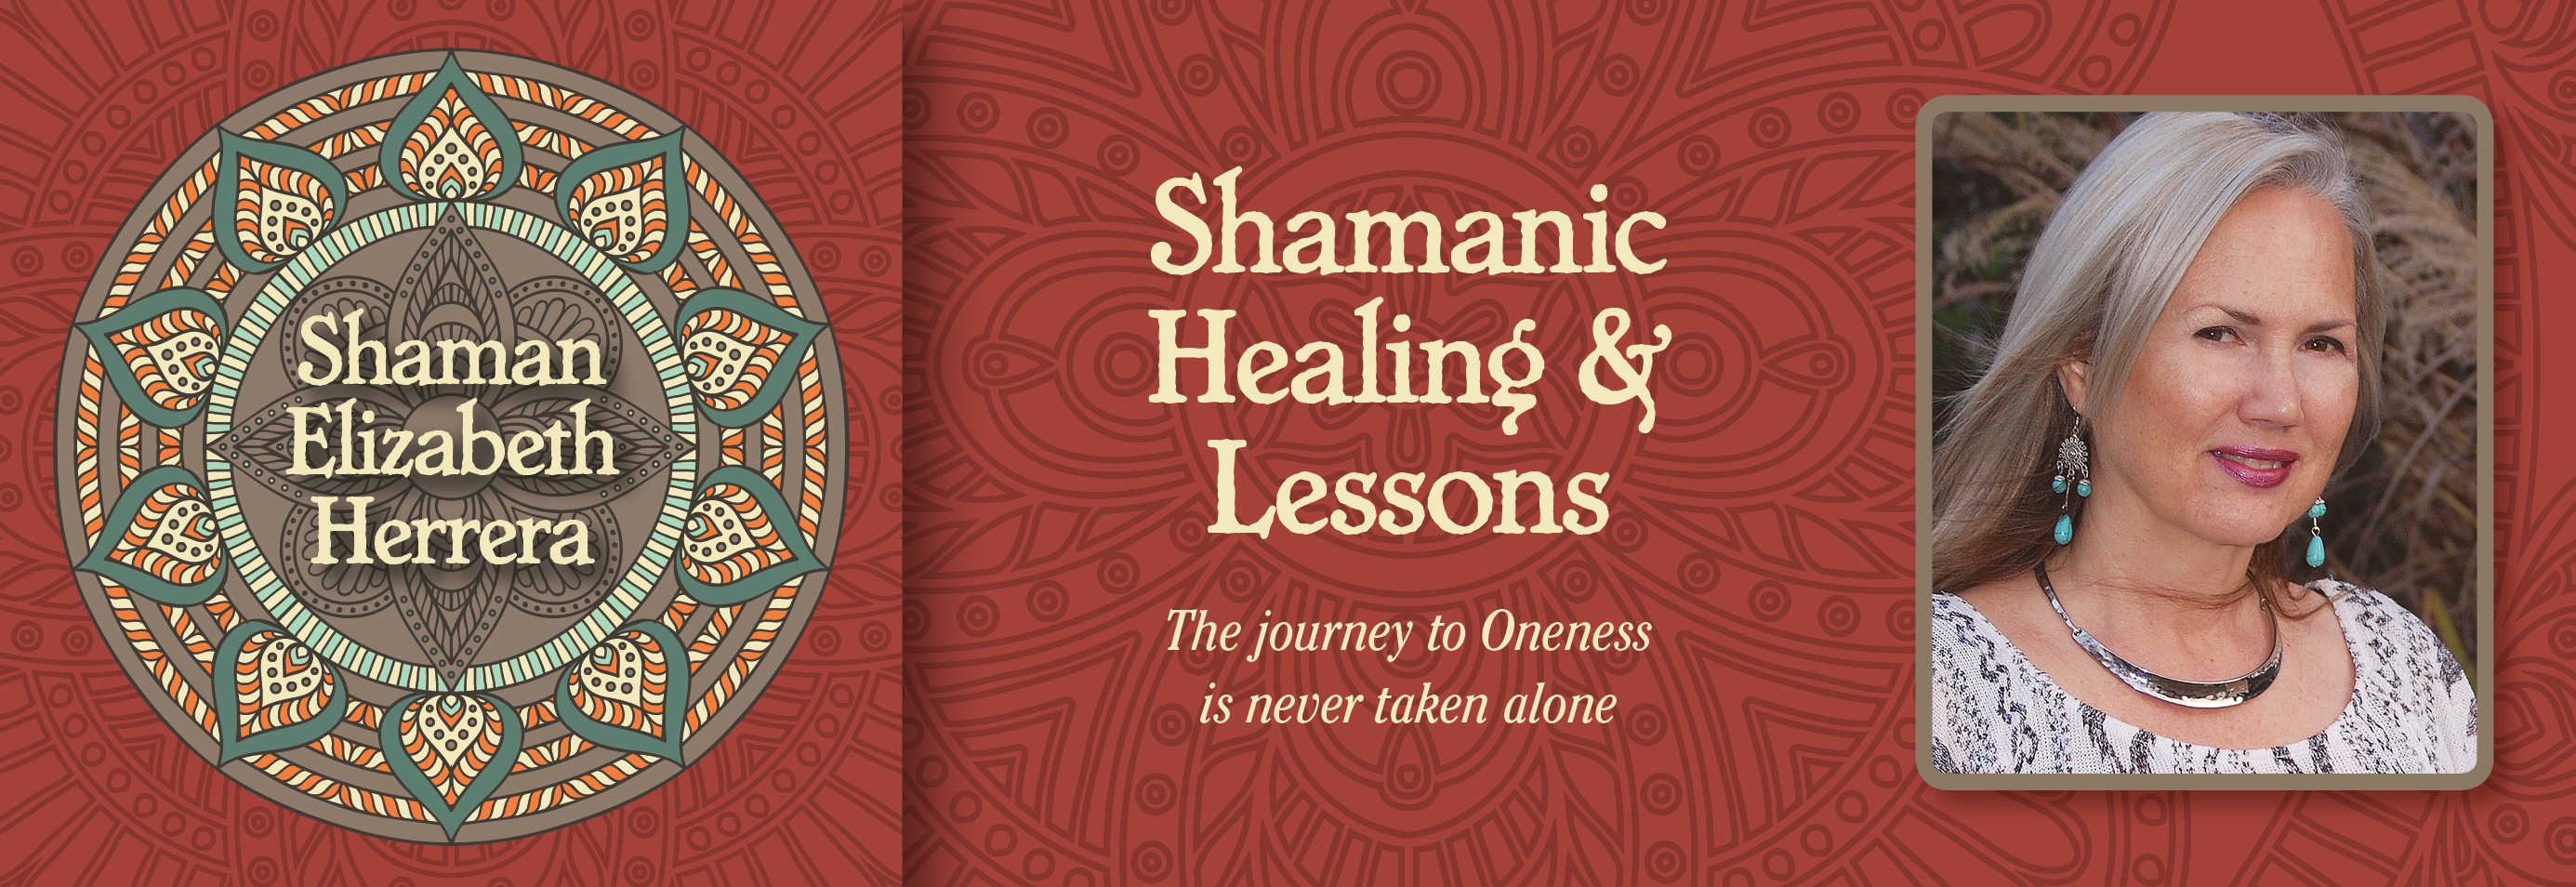 an analysis of the films eduardo the healer and the shamans journey